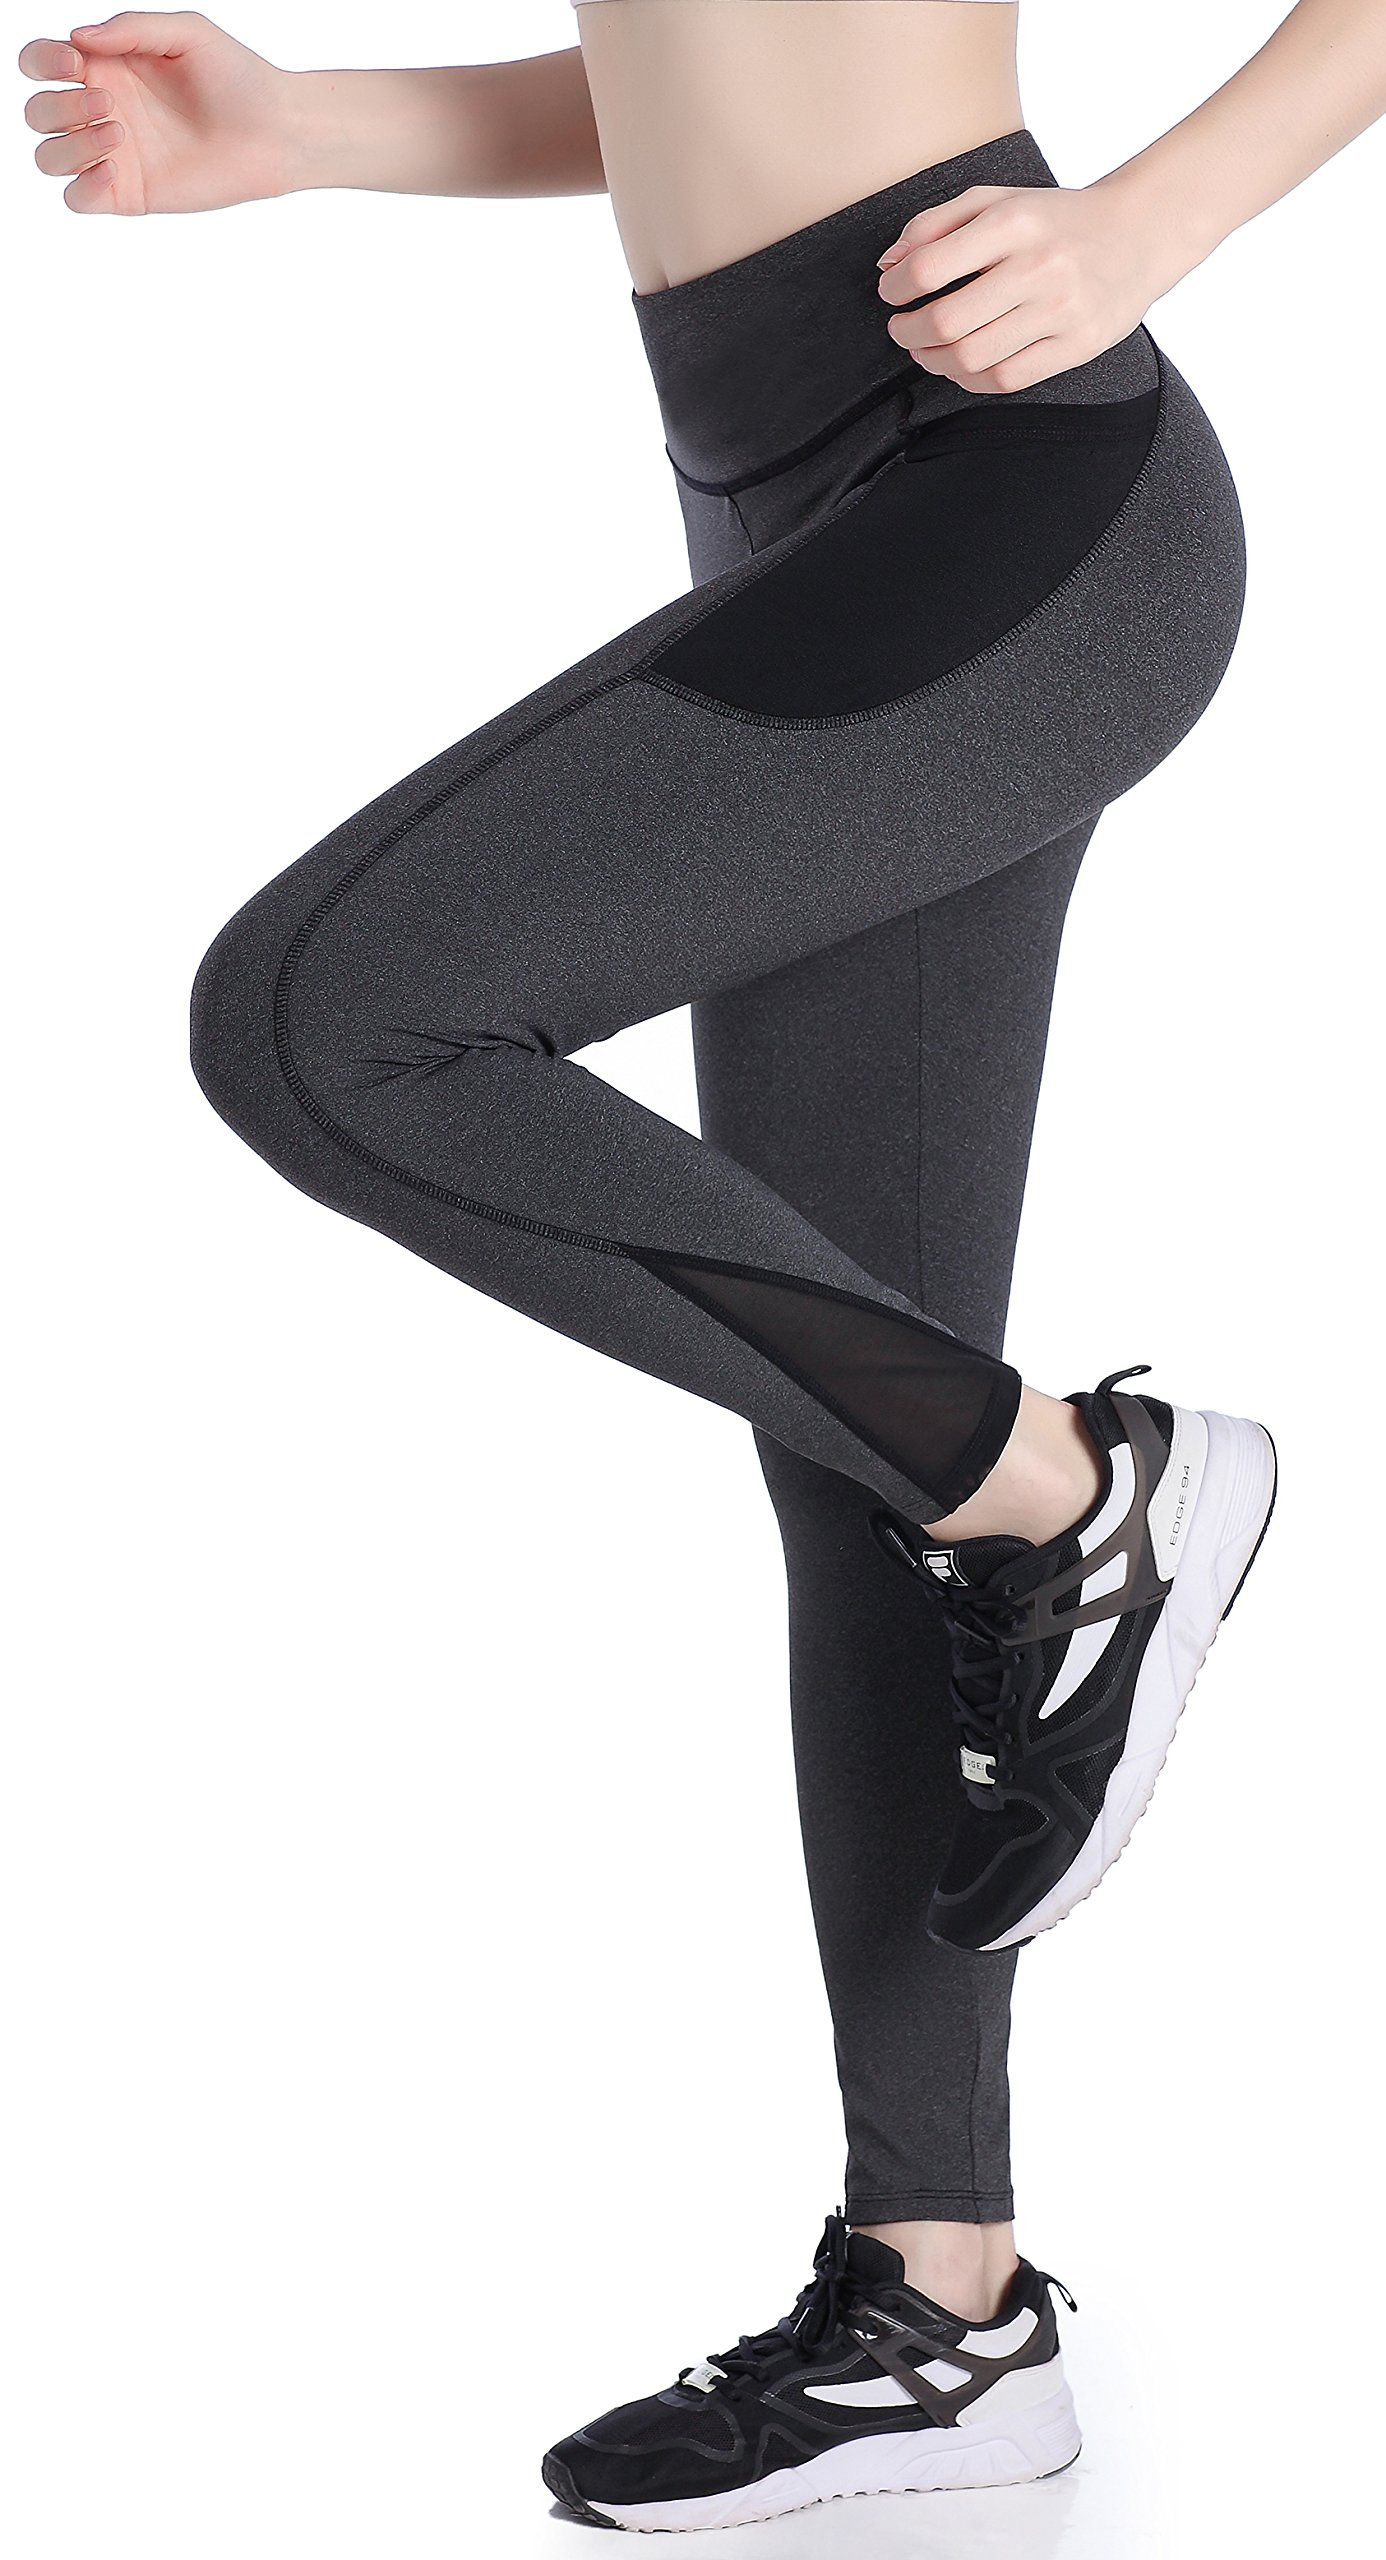 Picotee Women's High Waist Capri Workout Yoga Pants Running Tights Active Leggings w Side Pocket (L, Deep Grey Pants)